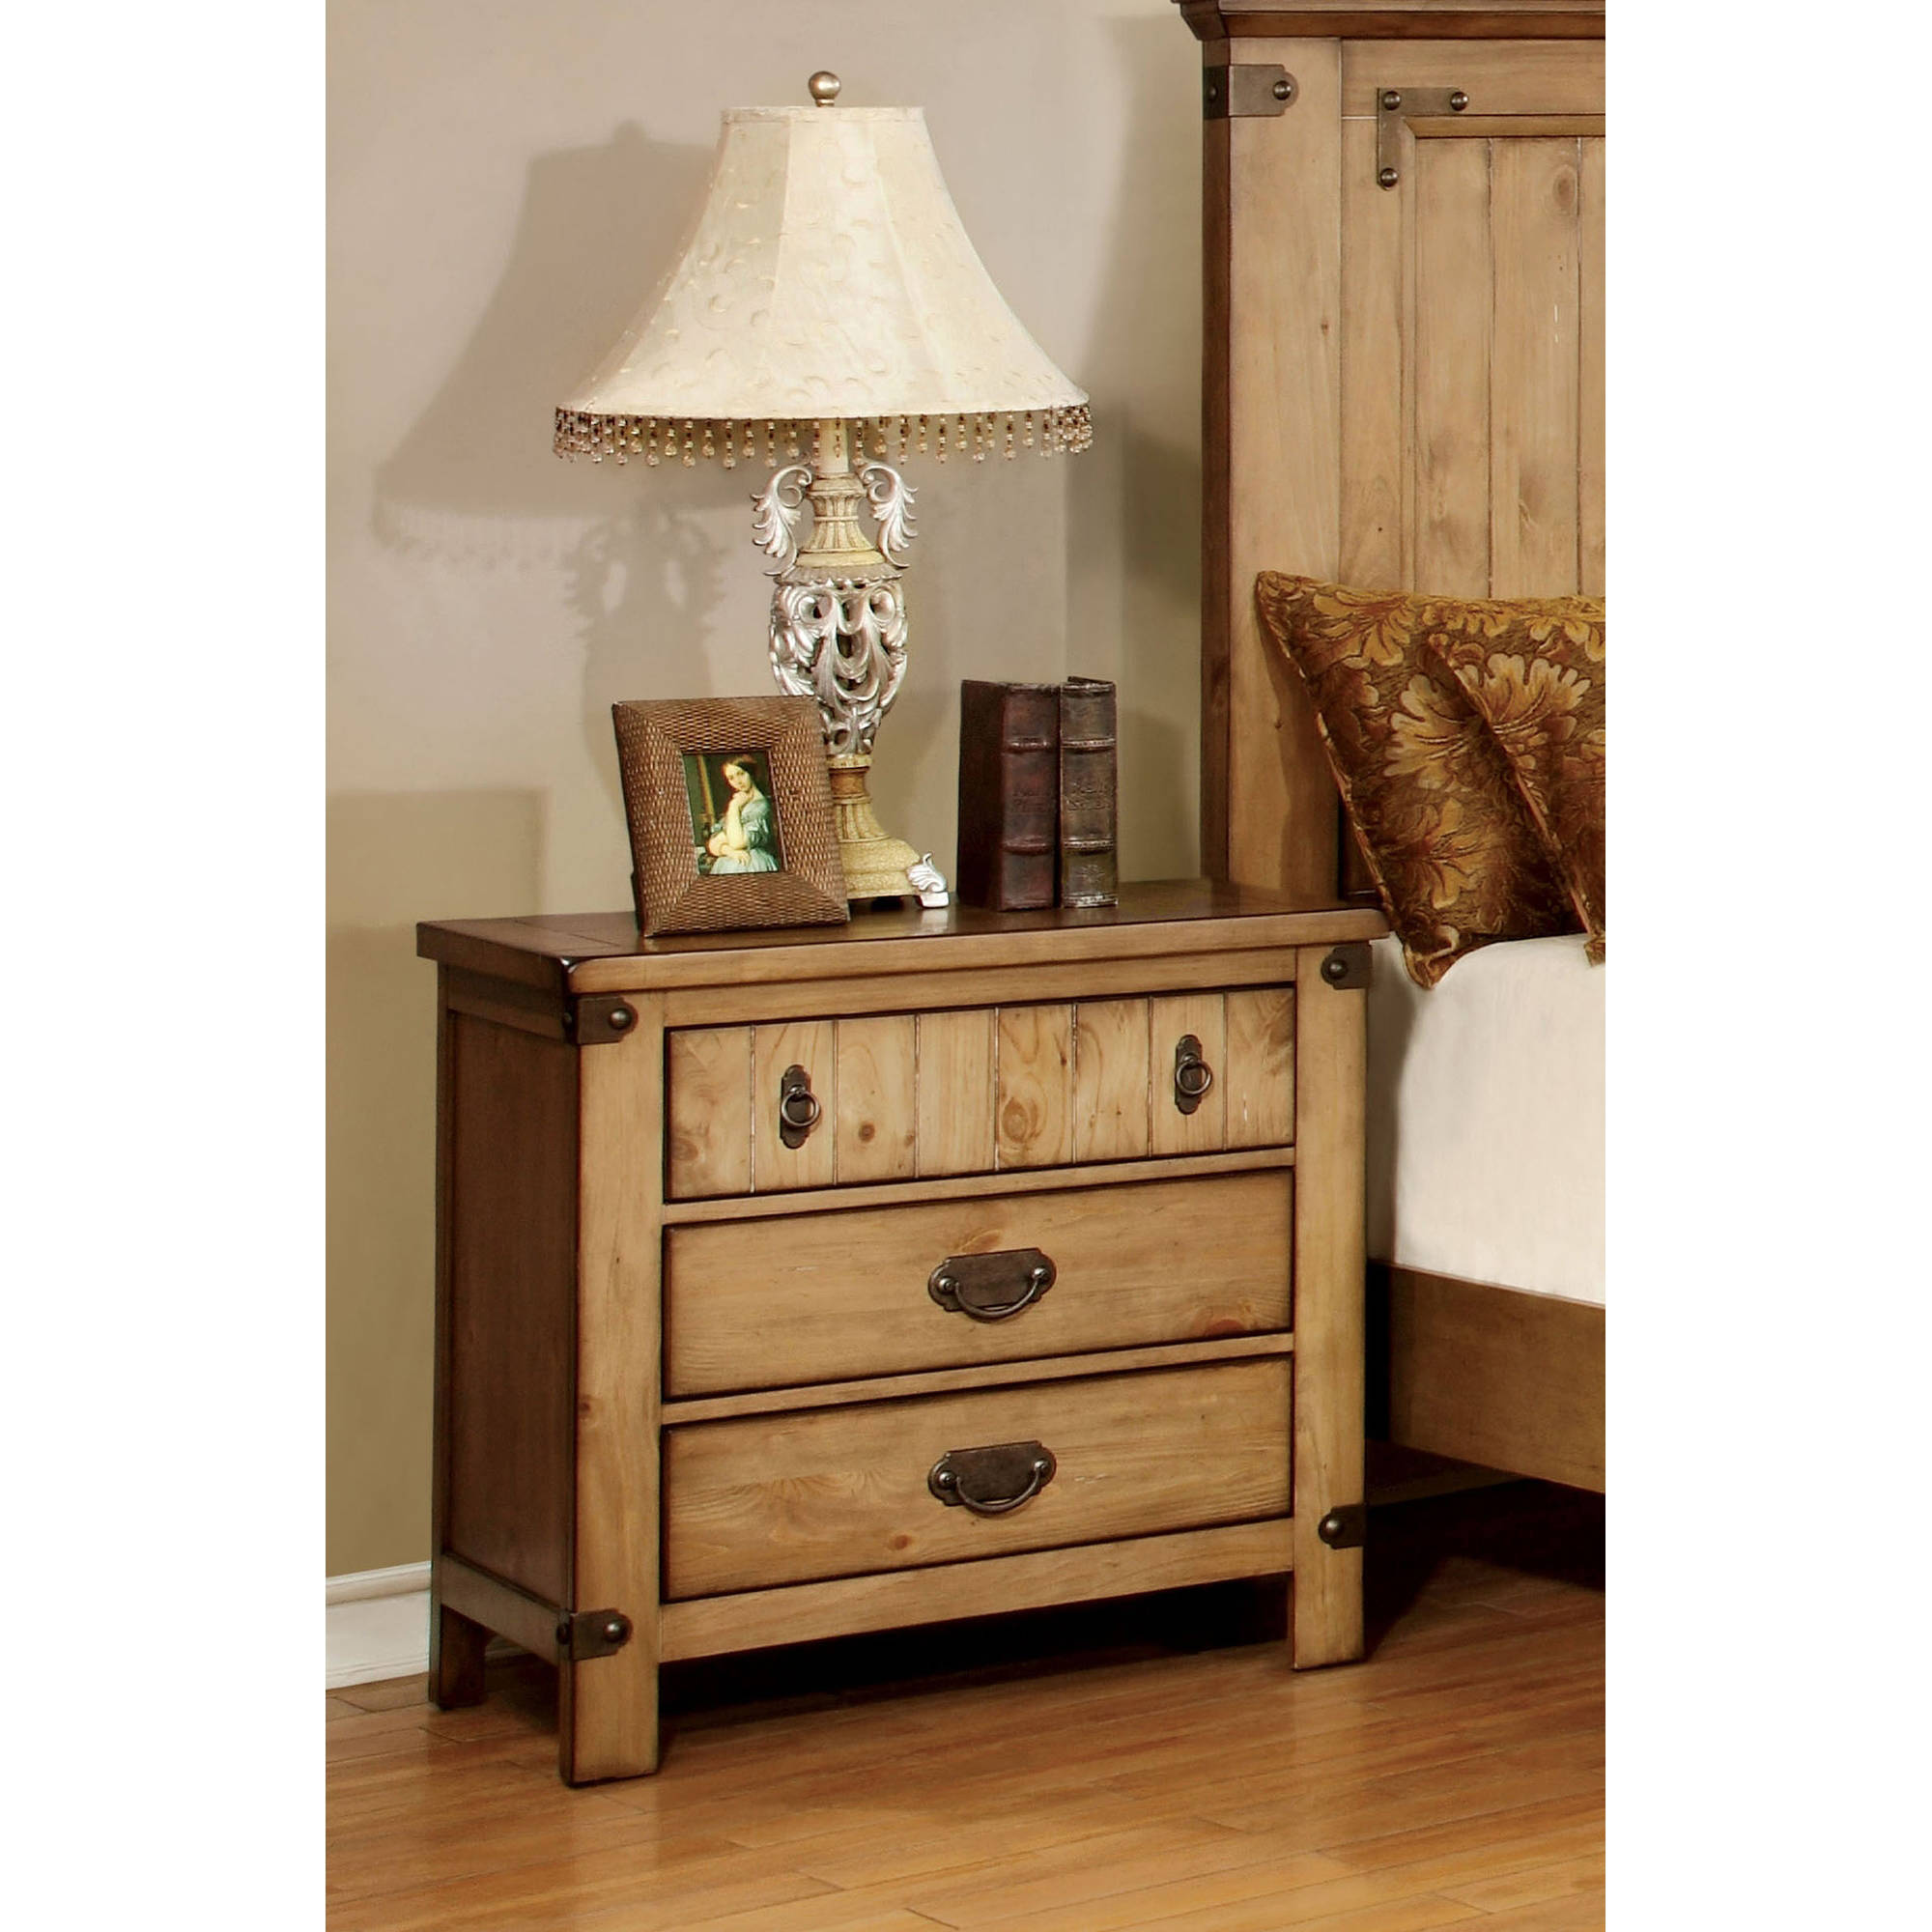 Furniture of America Moira Country Style 3-Drawer Nightstand, Weathered Elm